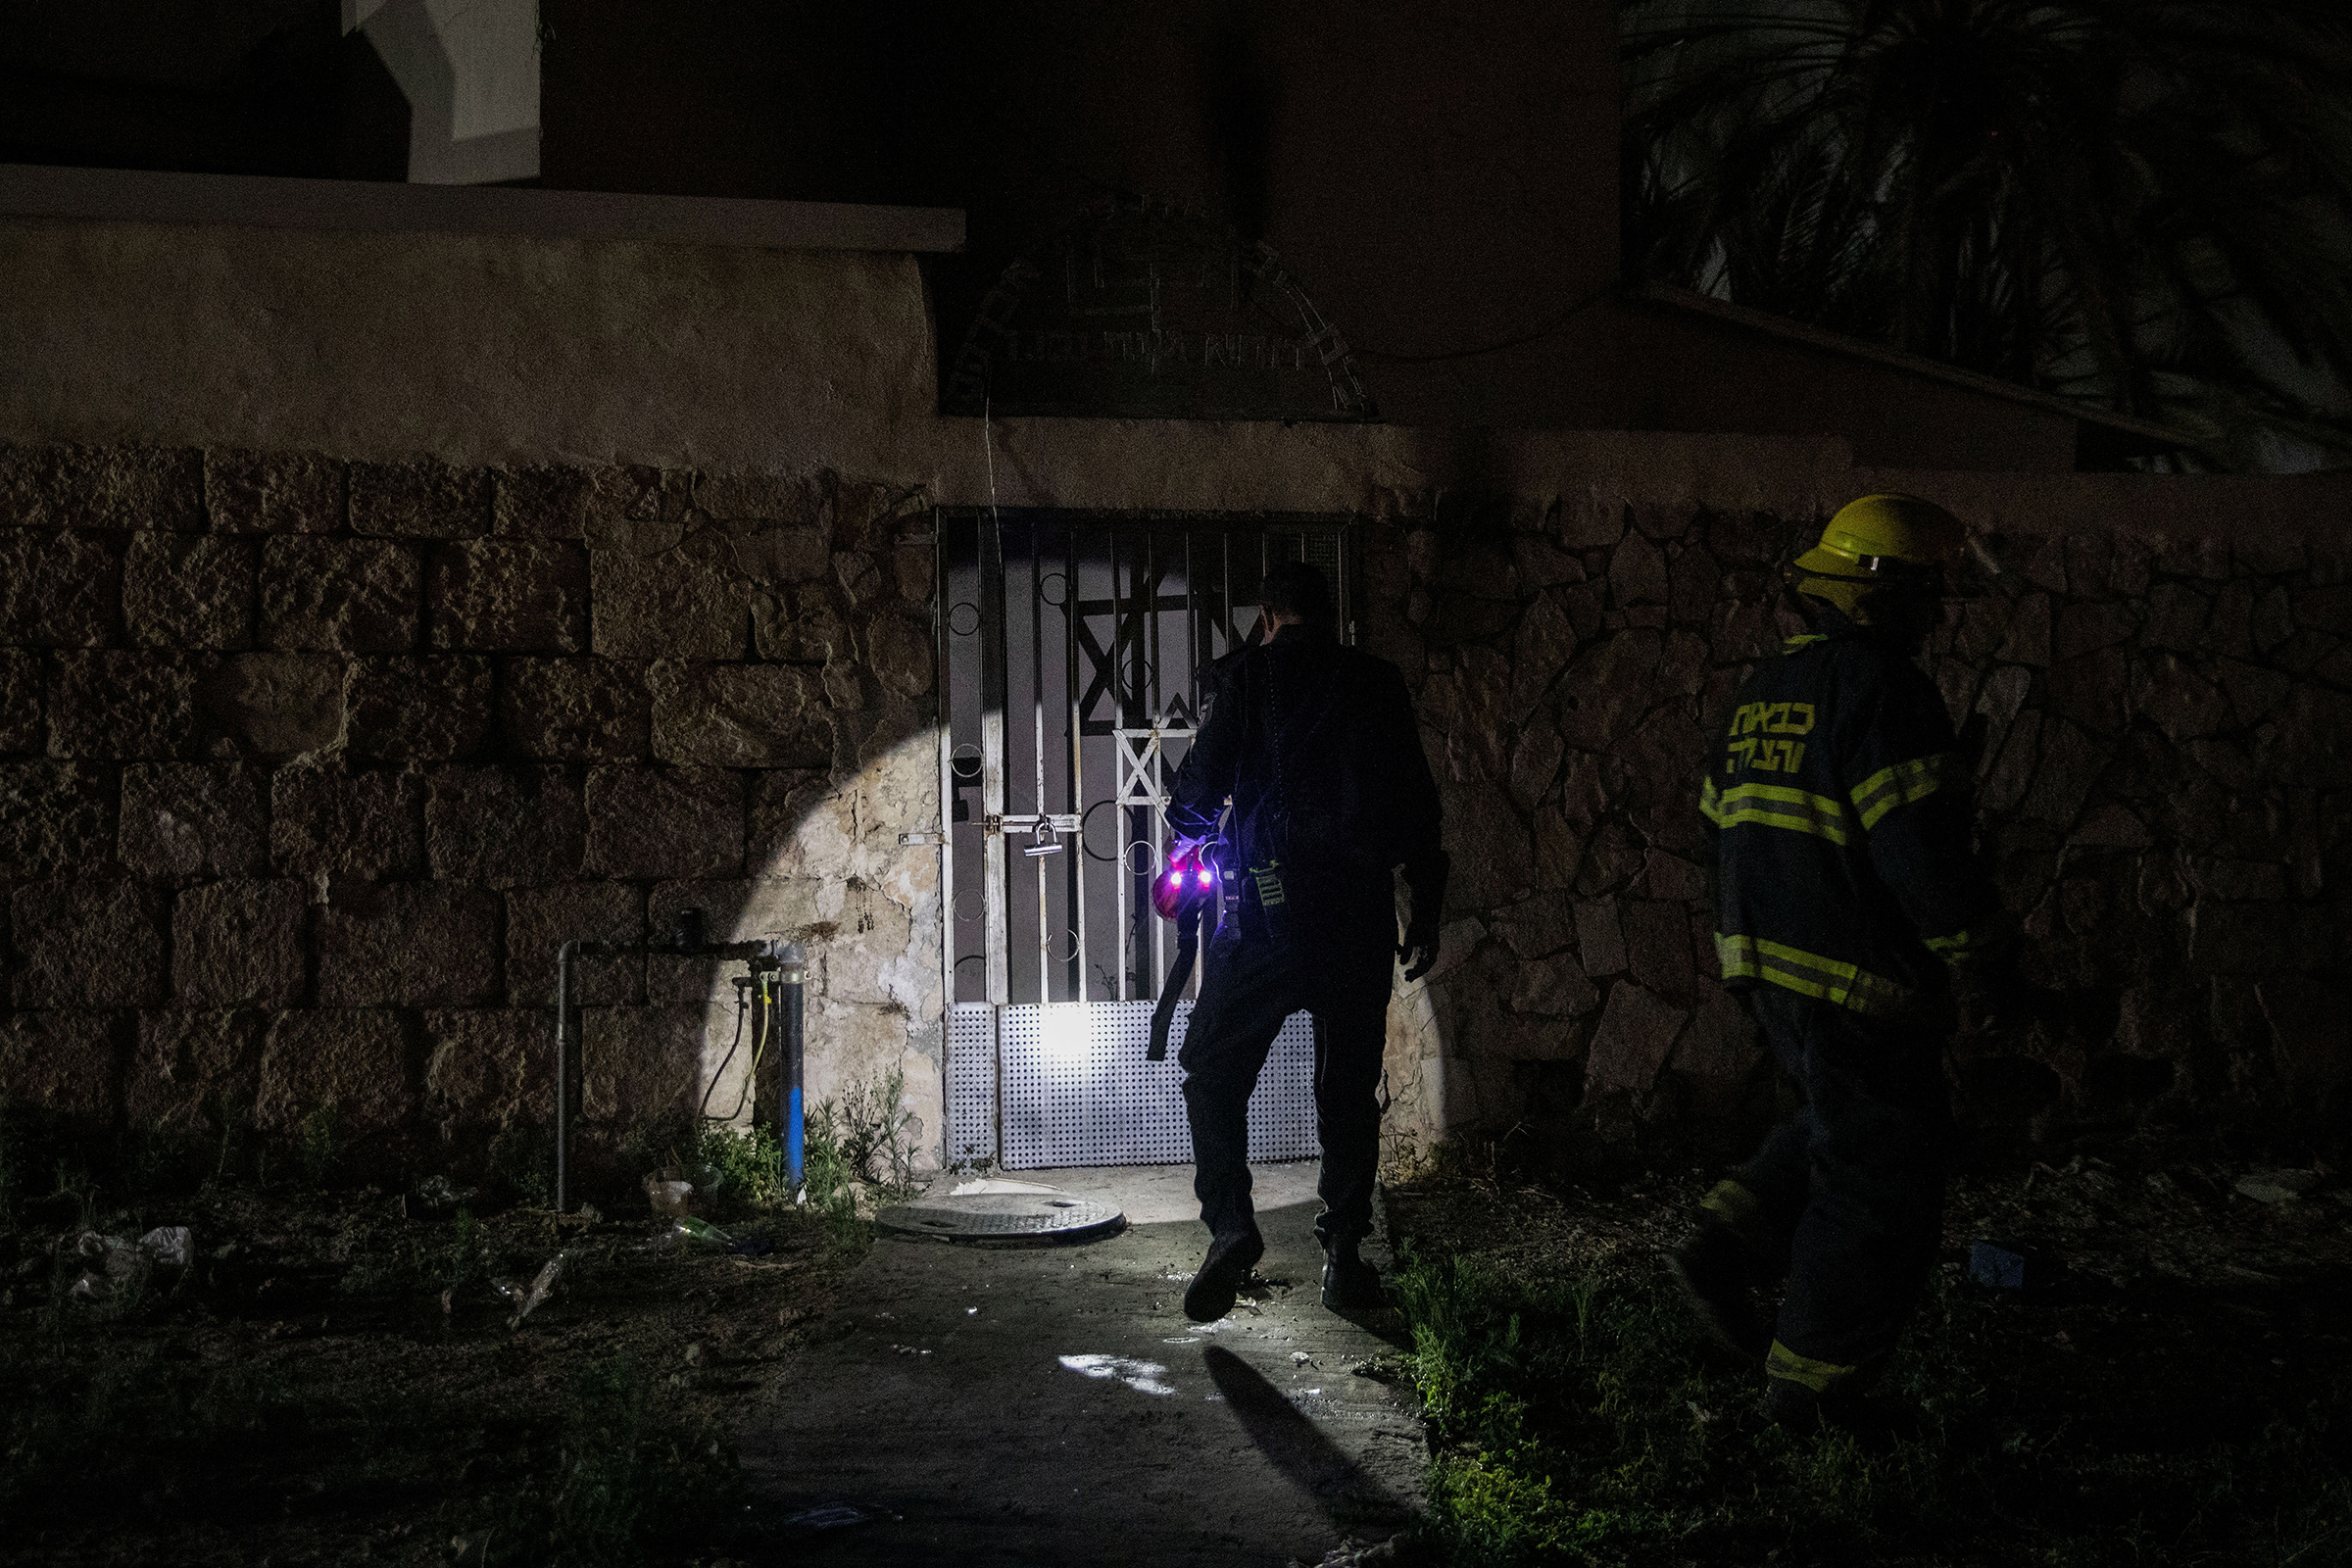 Firefighters inspect a synagogue after it was set on fire in Lod on May 14, 2021.